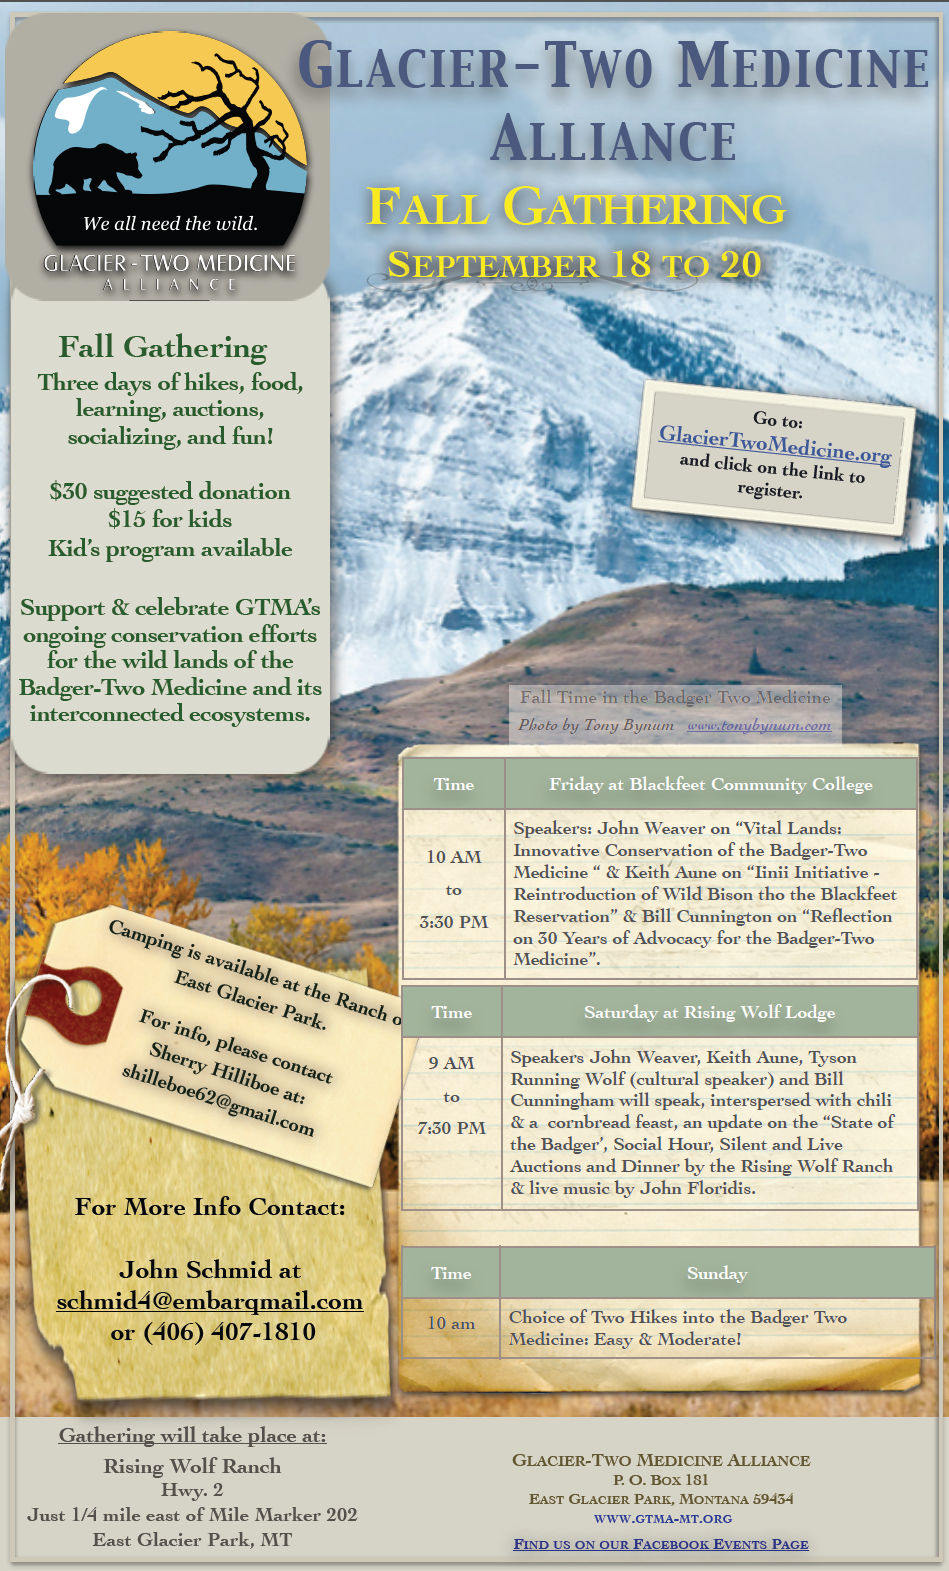 Glacier-Two Medicine Alliance 2015 Fall Gathering Poster